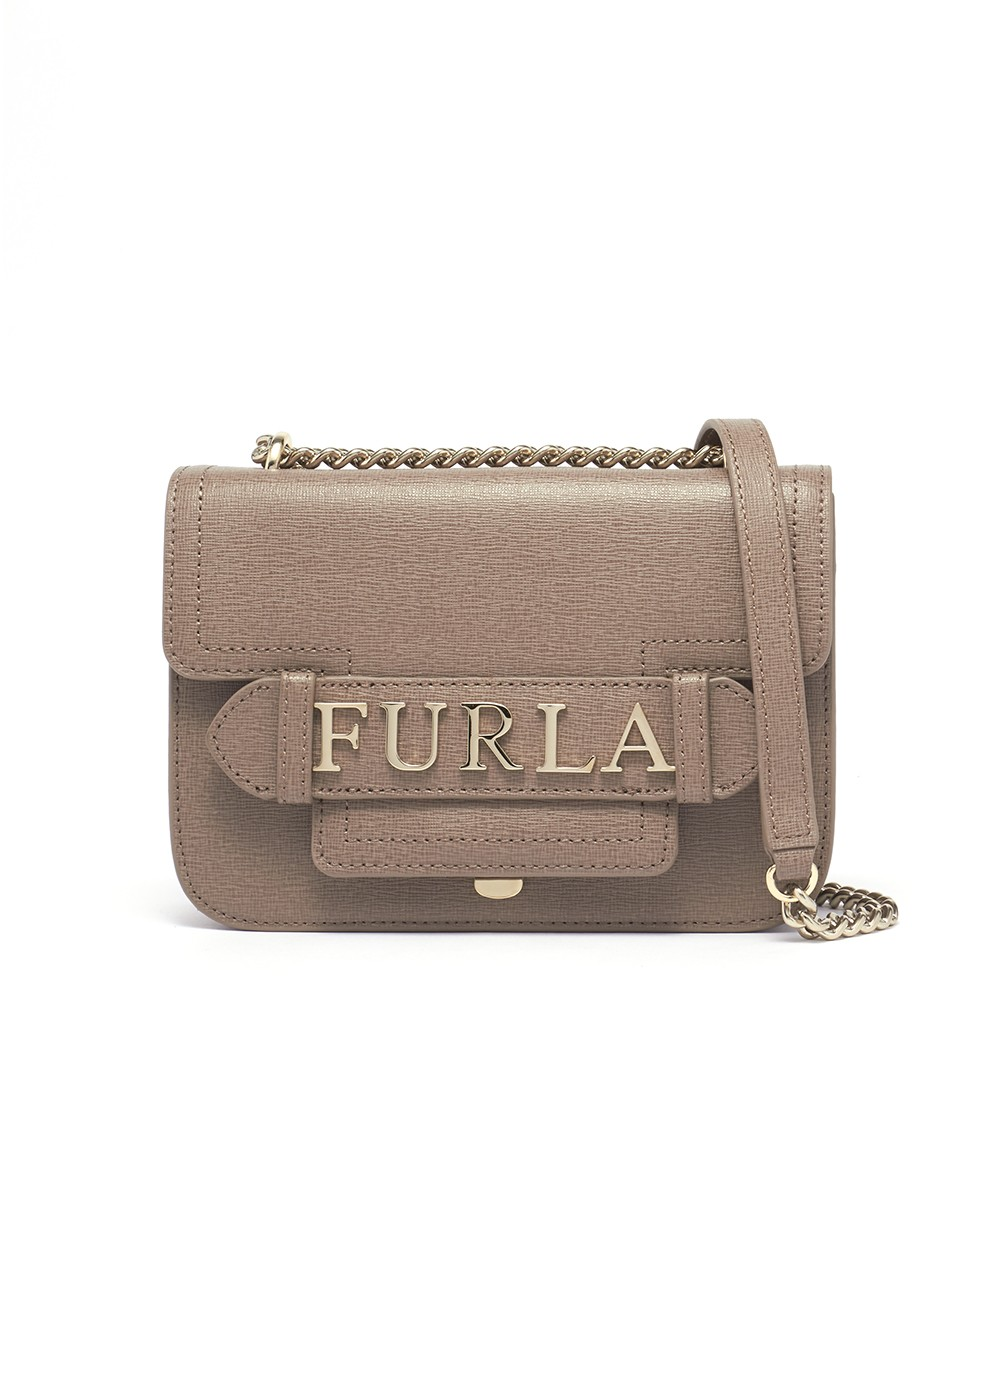 【最大57%OFF】【FURLA】CAROLショルダーバッグ|COLOR DAINO|ショルダーバッグ|2019 SPRING & SUMMER NEW ARRIVAL COLLECTION